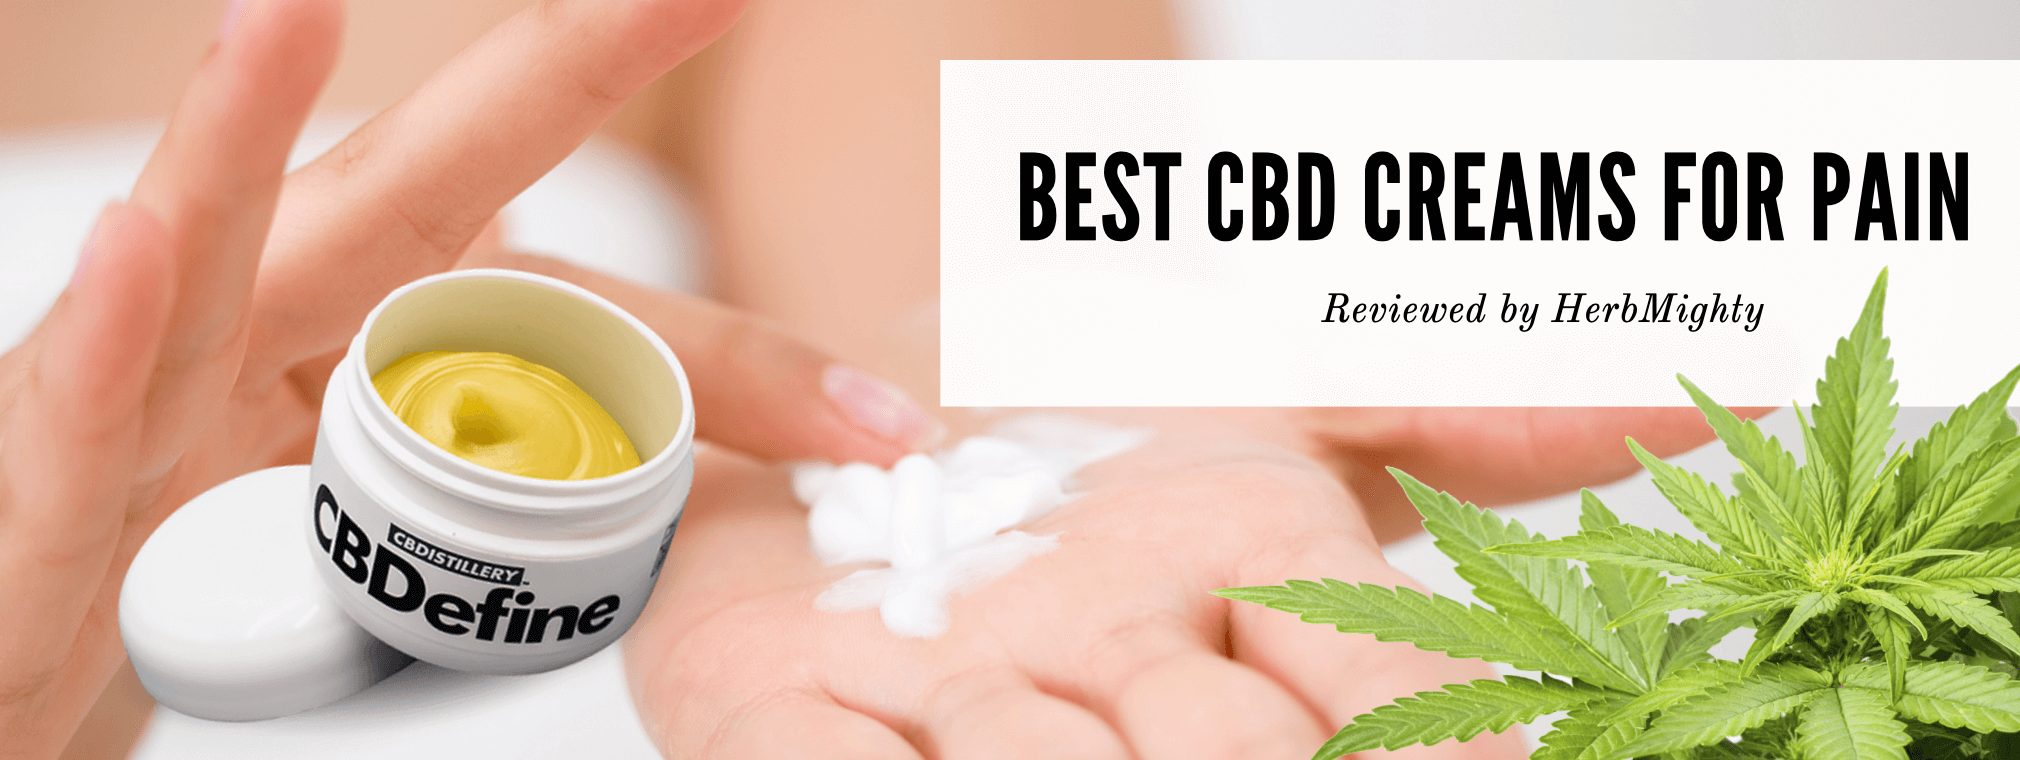 Koi CBD Review (Read BEFORE Buying): 2019 Review + 20% Coupon